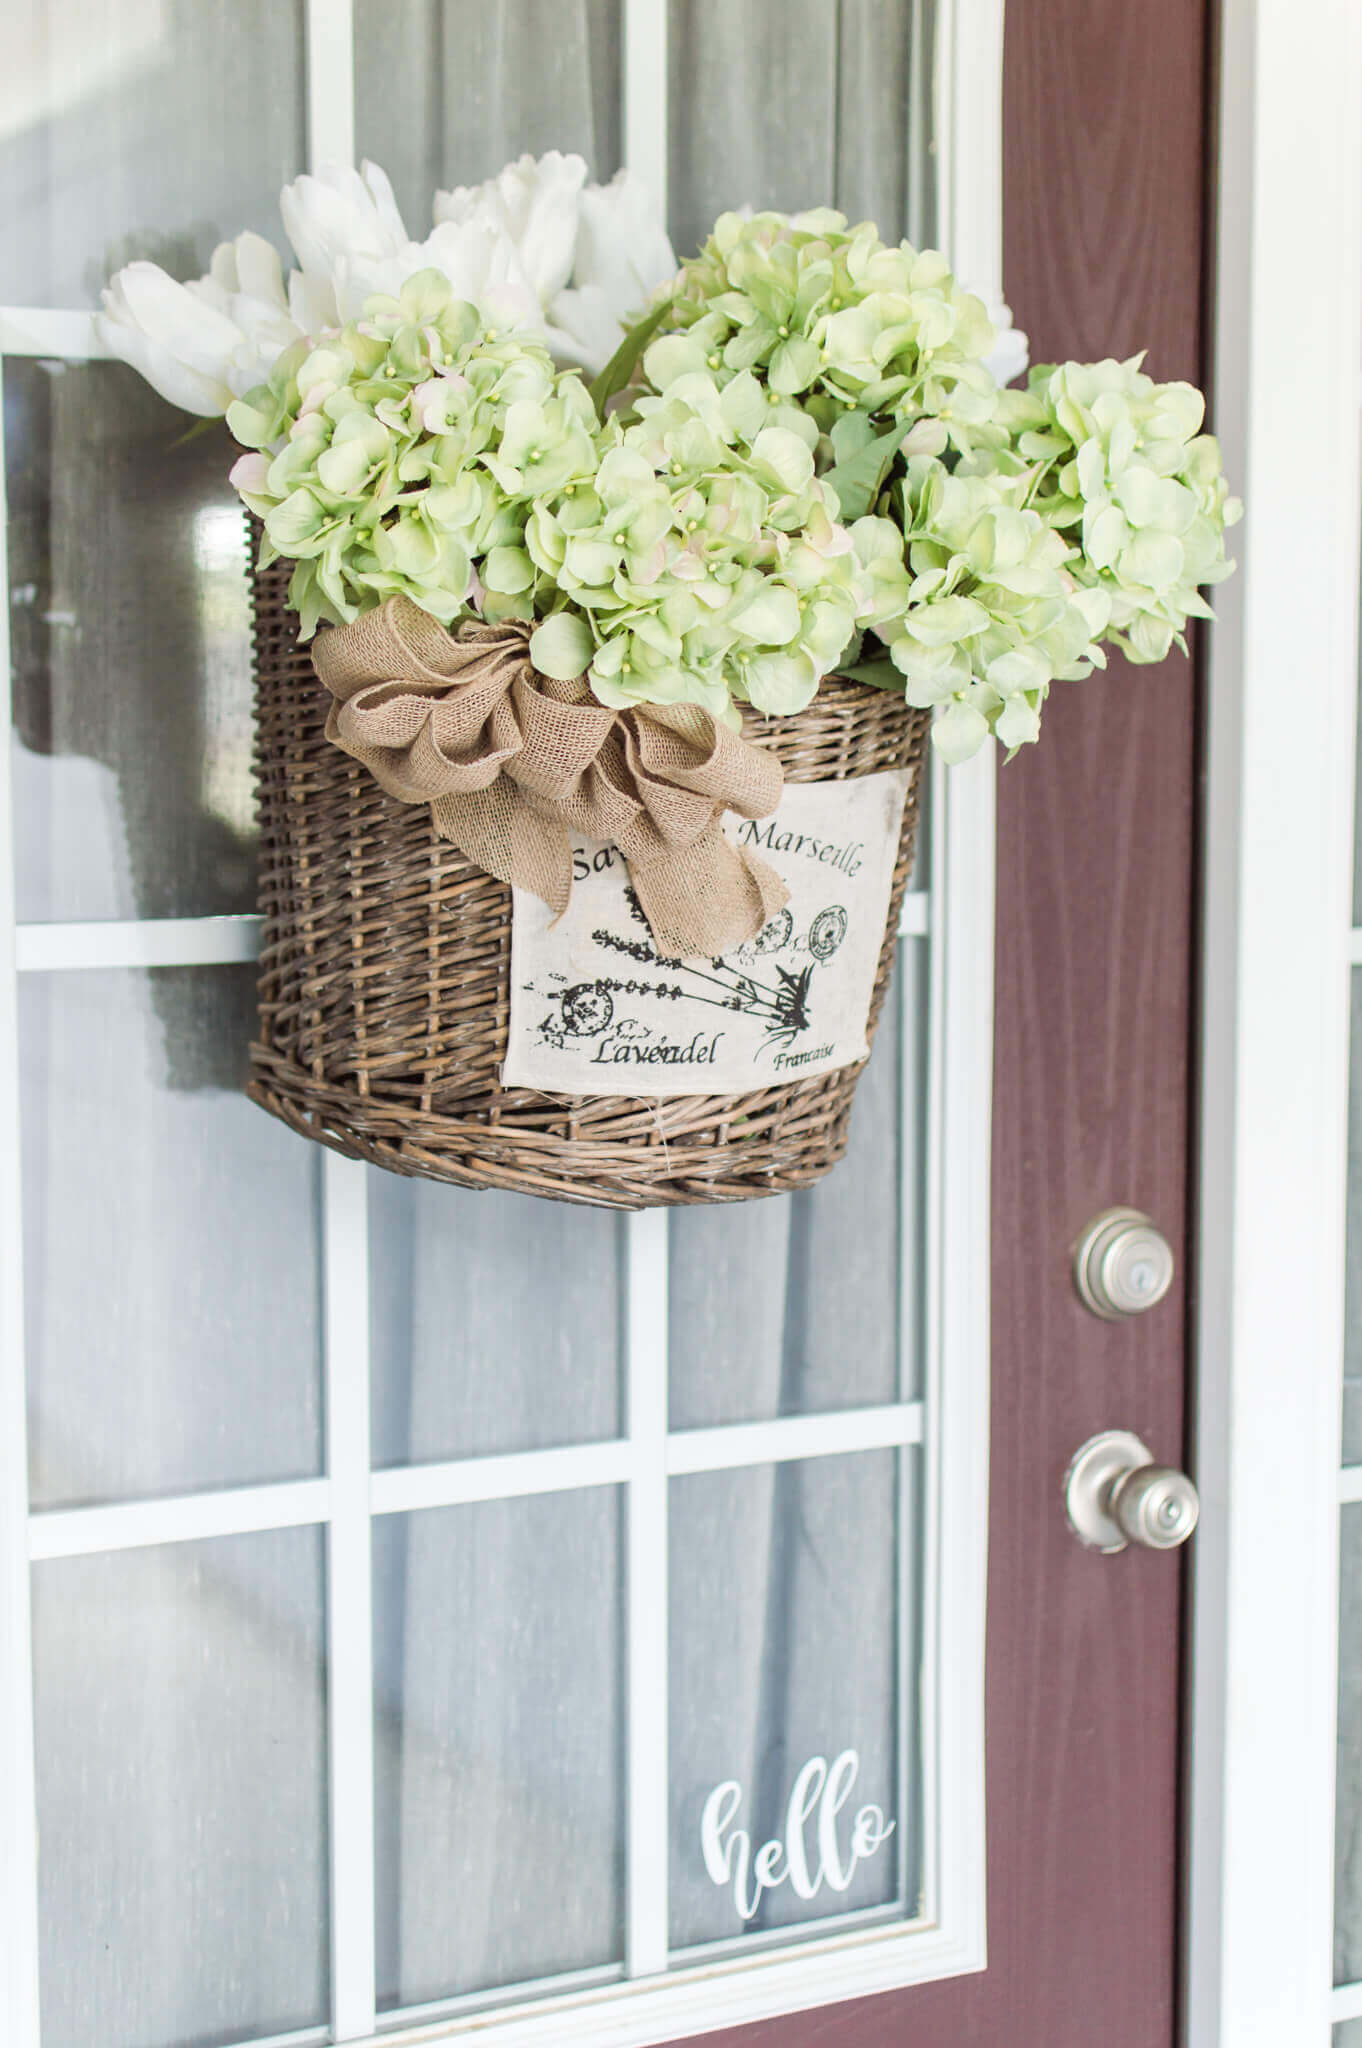 Market Basket Wreath Inspiration For Summer / A Hosting Home Blog